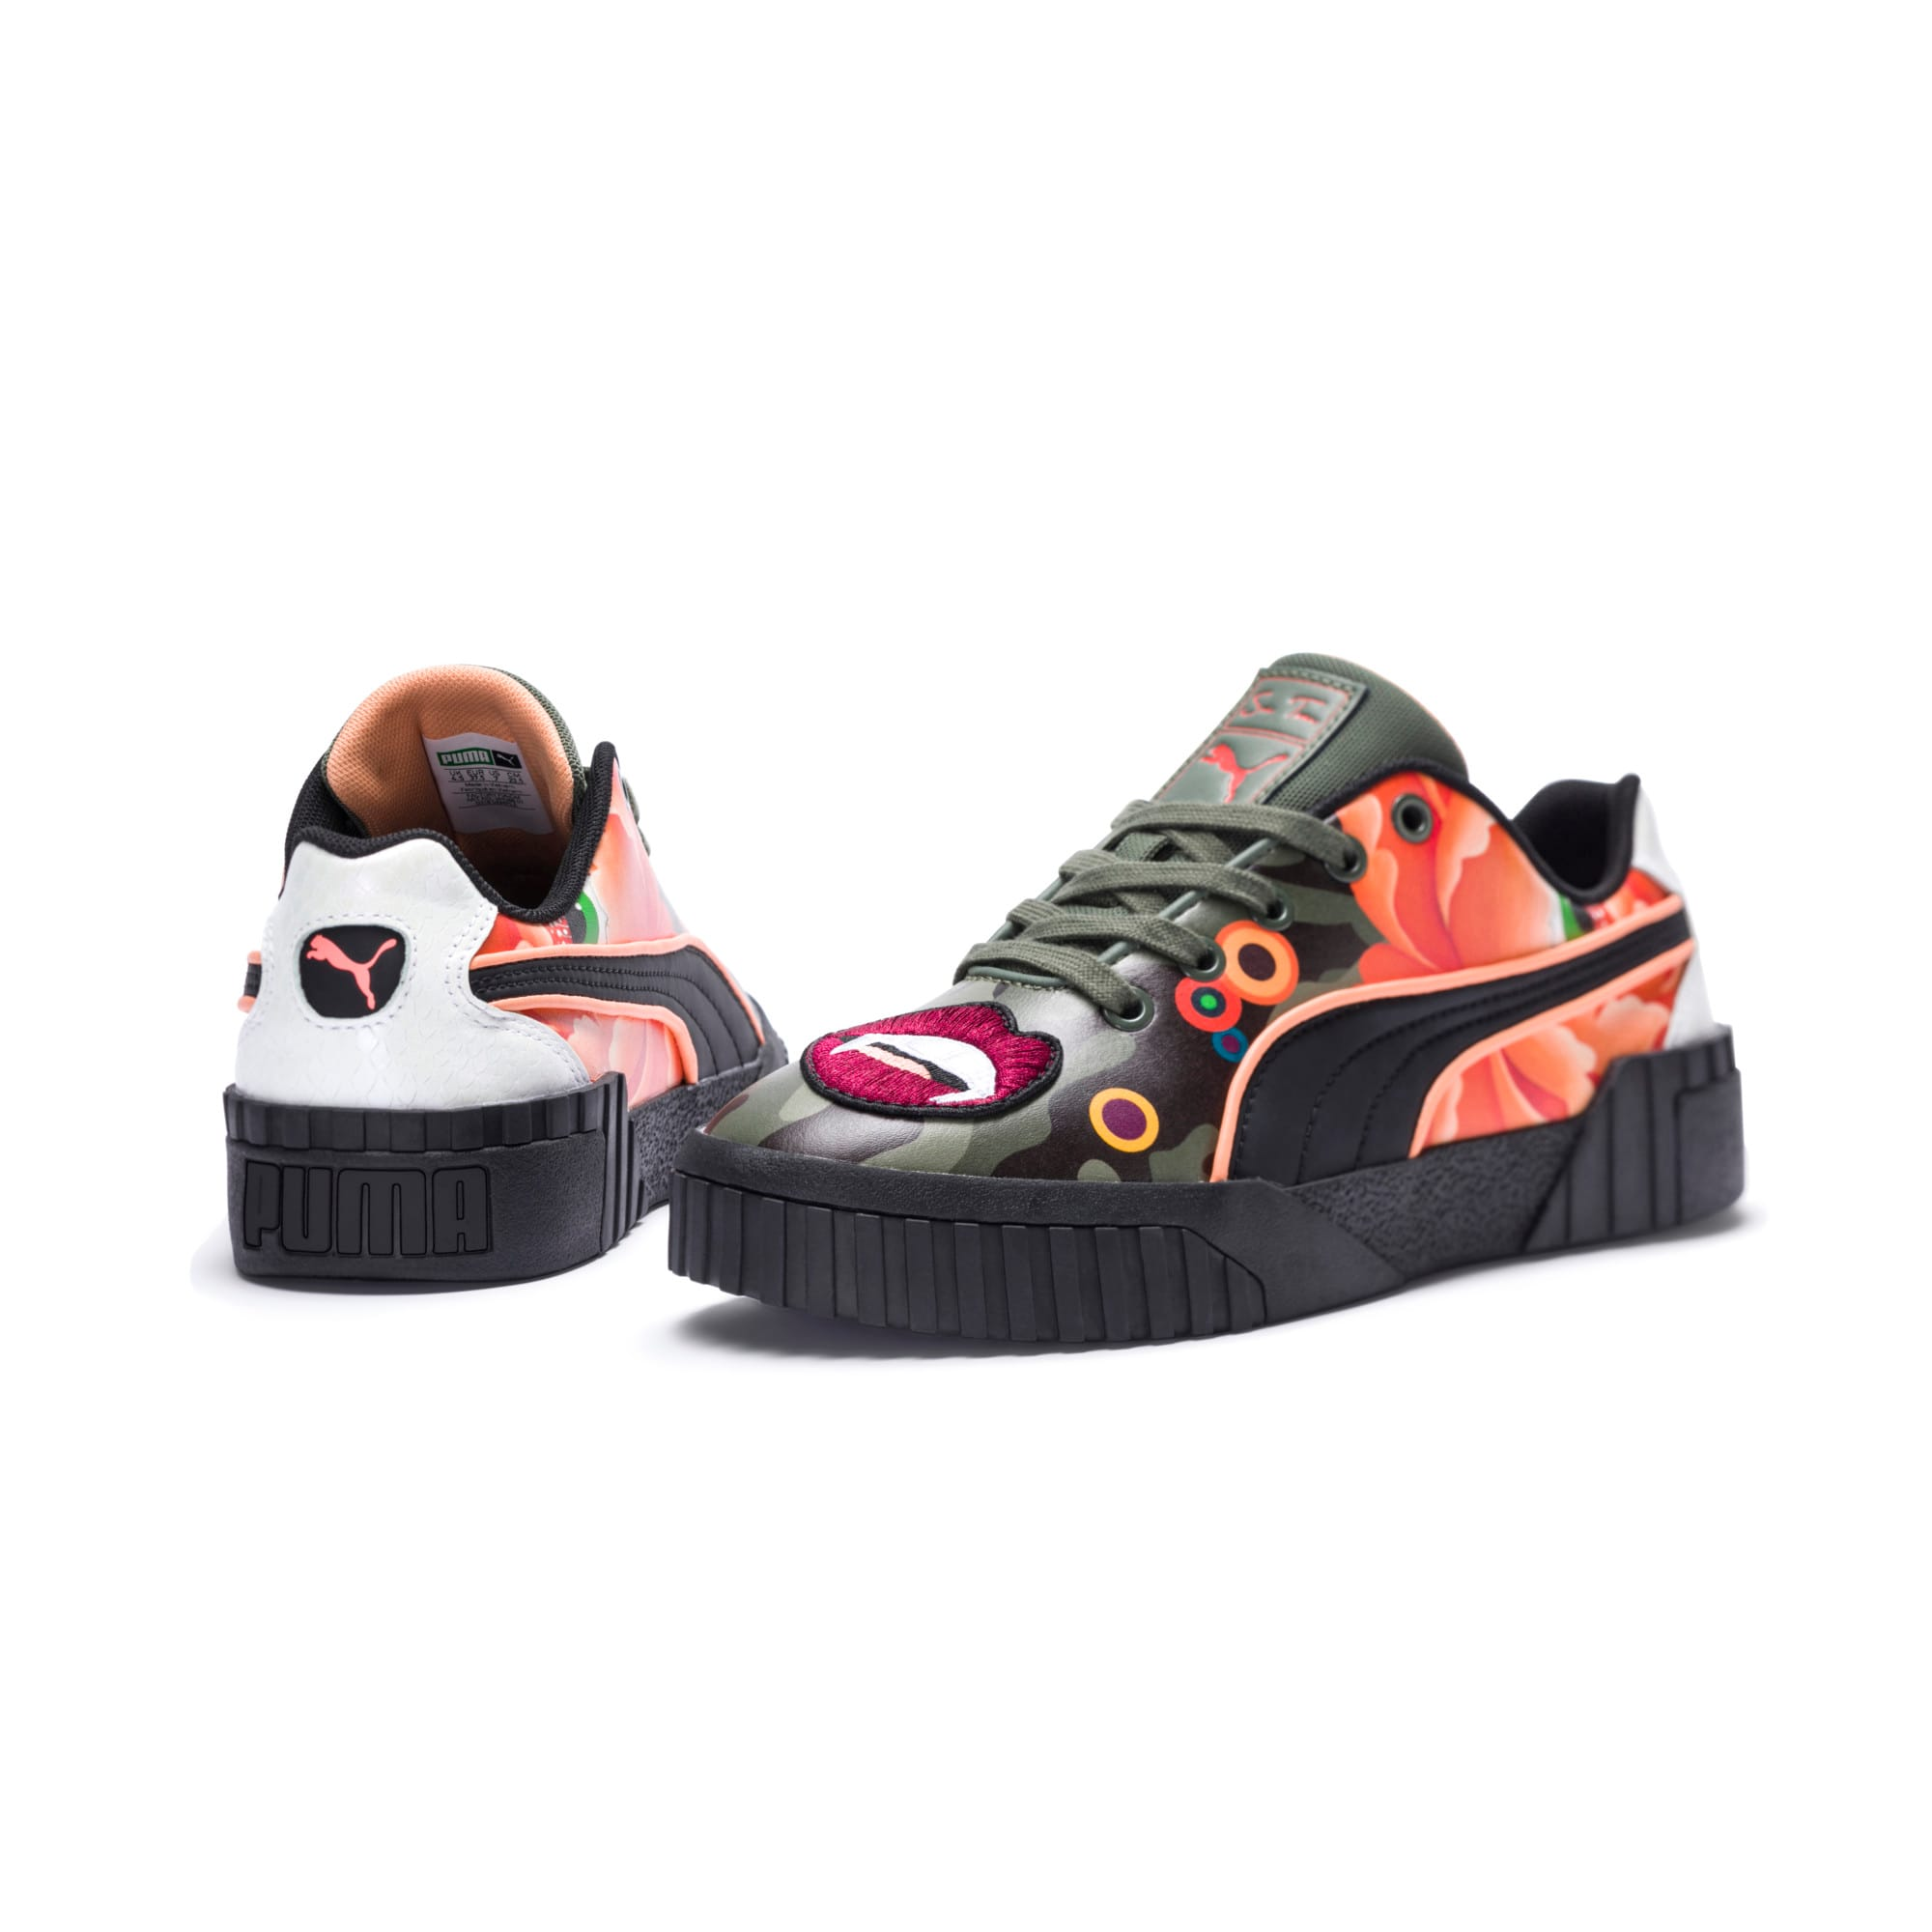 Thumbnail 9 of PUMA x SUE TSAI Cali 'Peonies Camo' sneakers voor dames, Puma Black-Puma Black, medium